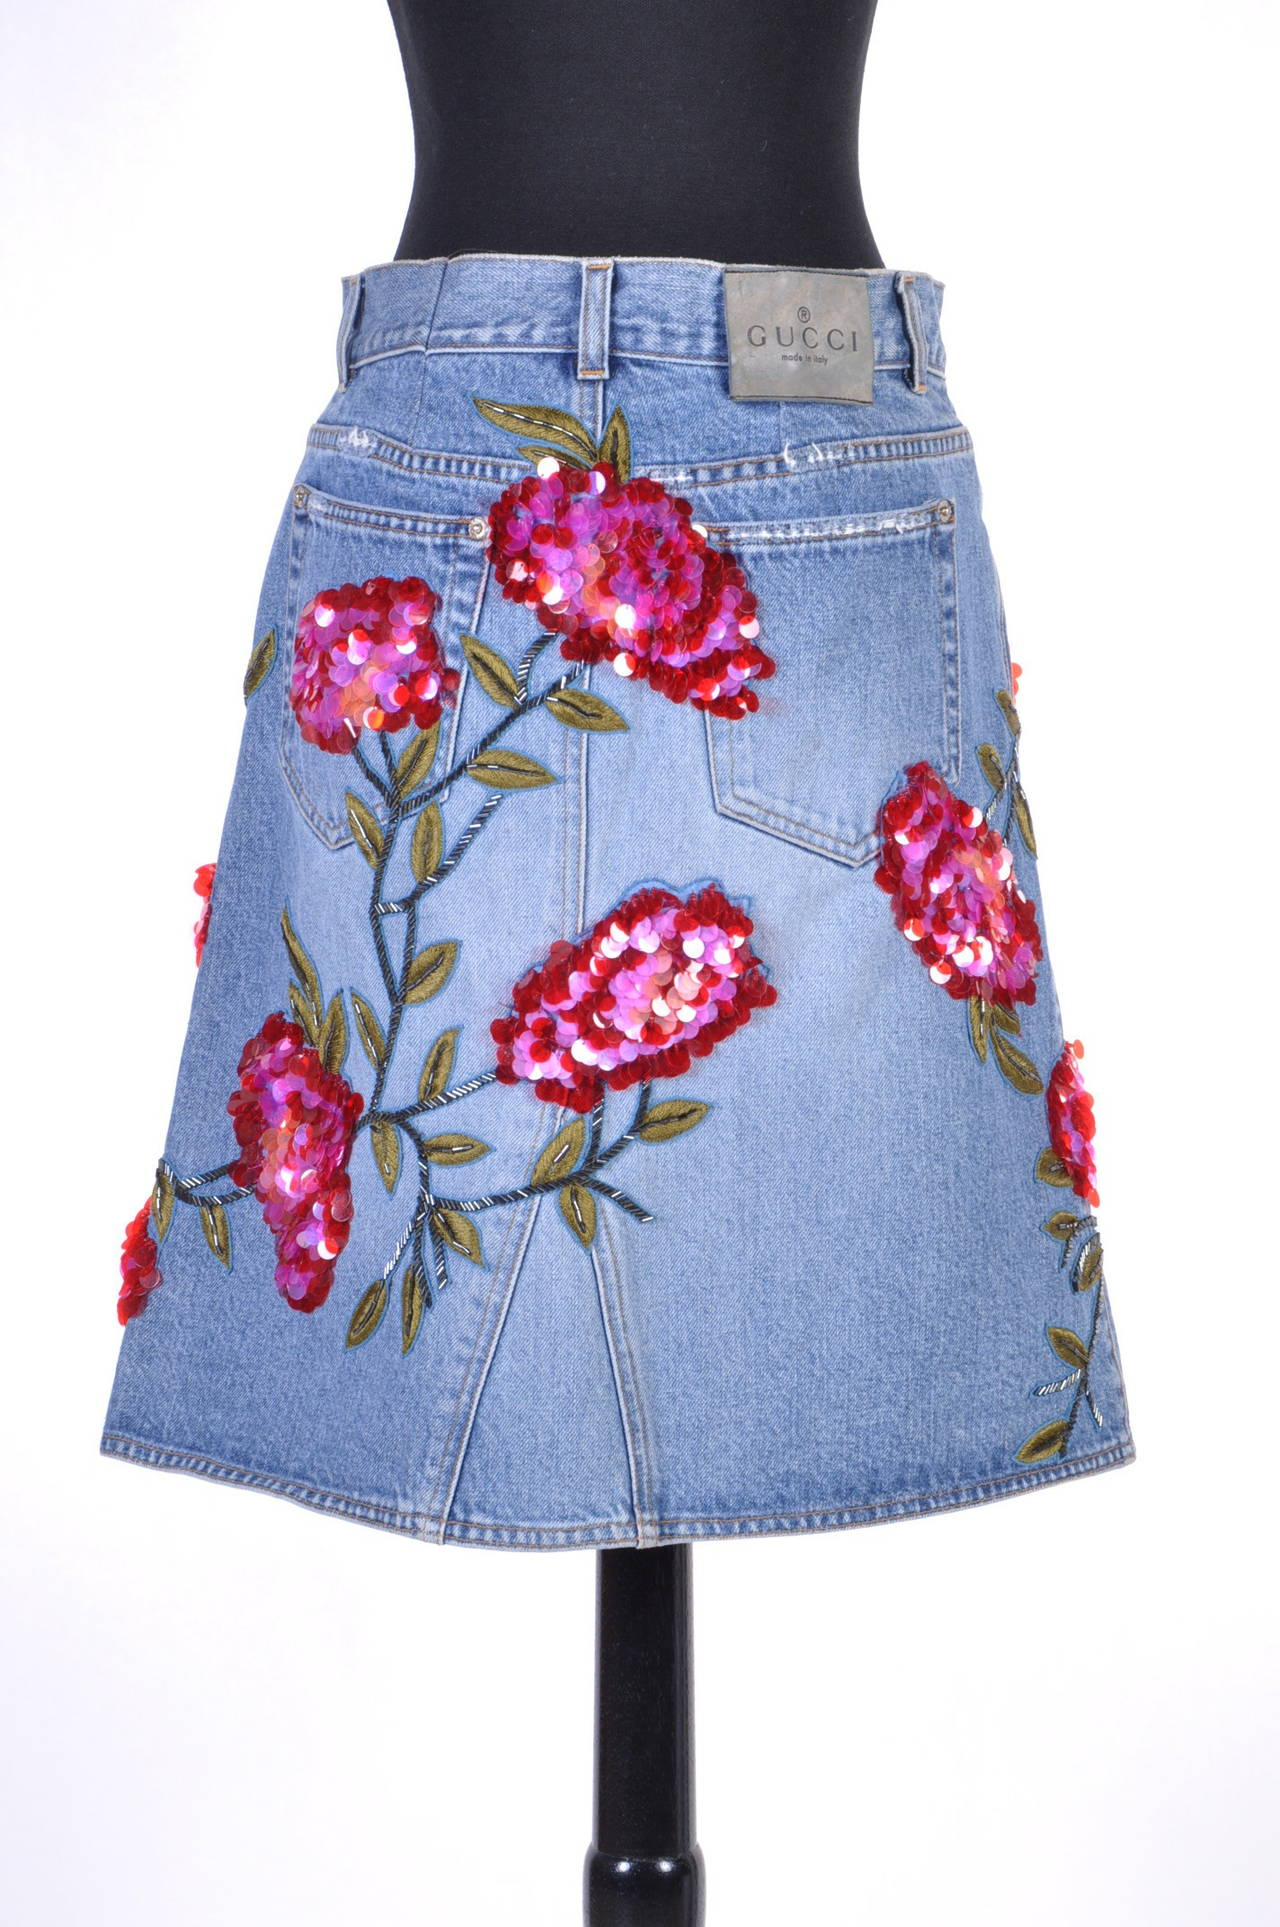 1999 TOM FORD for GUCCI RARE COLLECTOR'S BEADED DENIM SKIRT 5